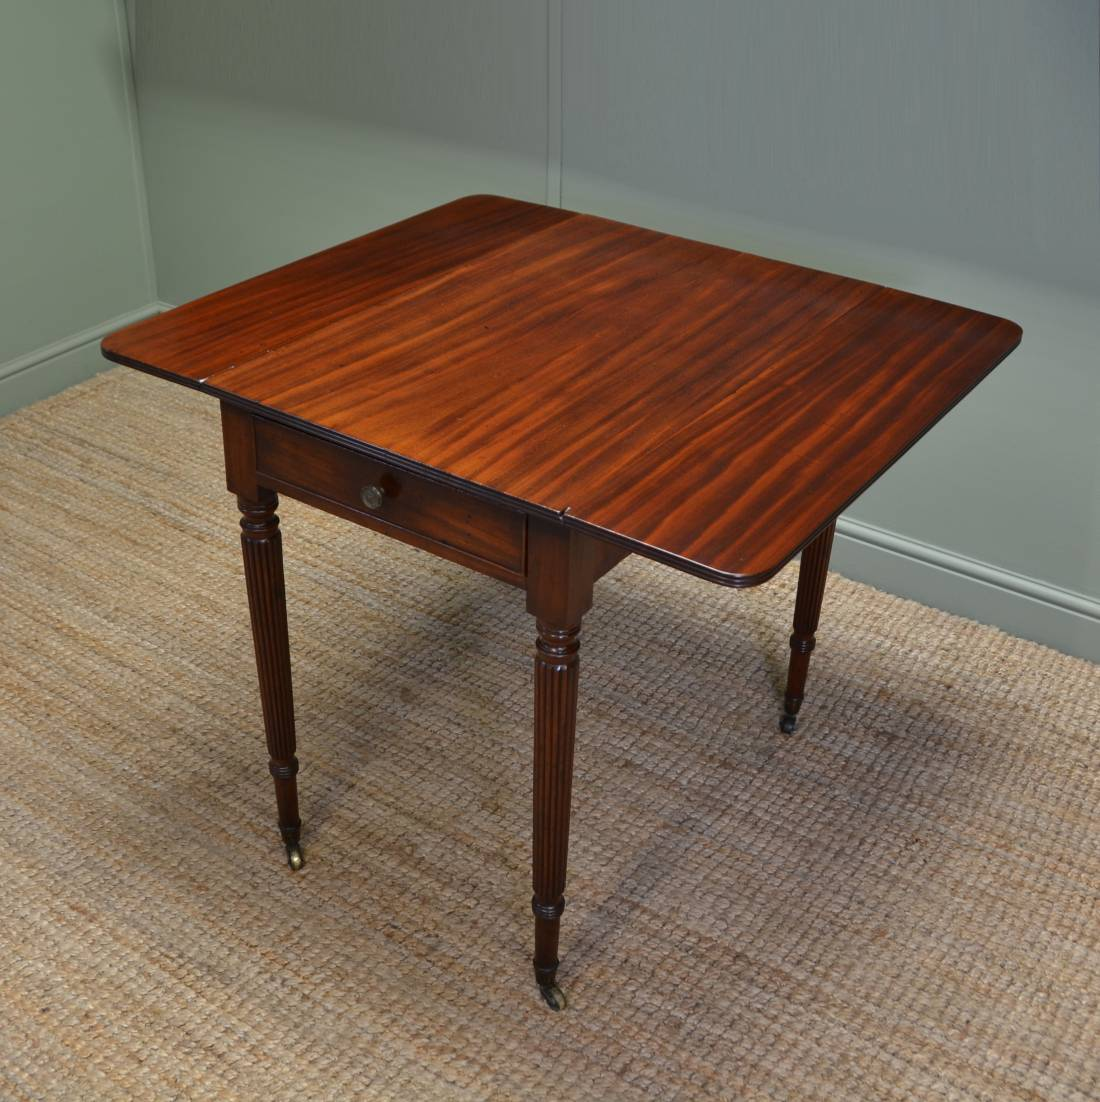 Fine Regency Gillows Small Drop Leaf Mahogany Dining Table  : 51971 from antiquesworld.co.uk size 1100 x 1102 jpeg 138kB